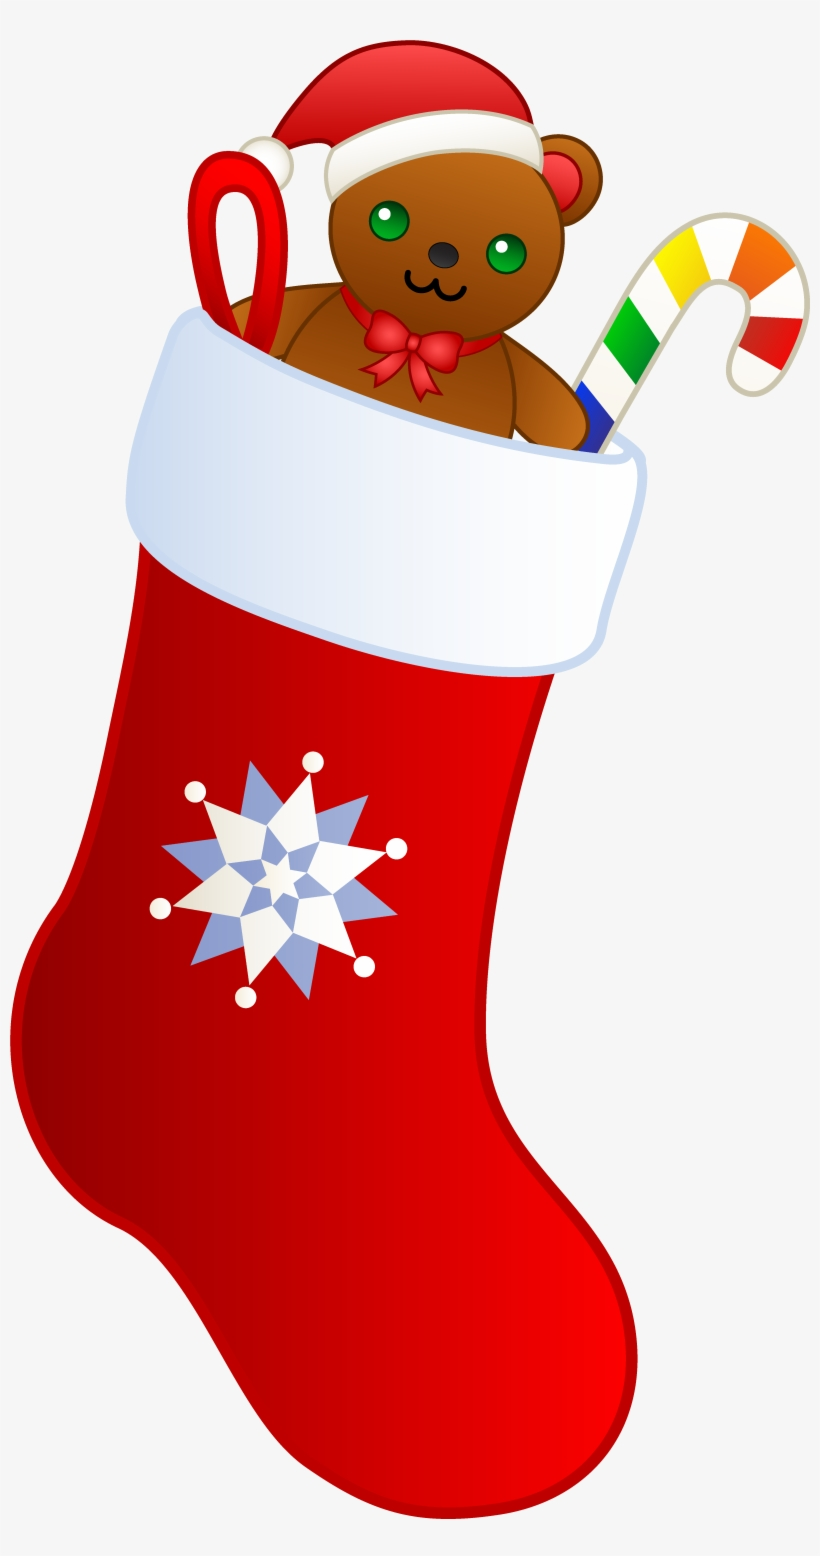 Christmas Stocking With Teddy - Christmas Stocking Transparent Background, transparent png #8145215